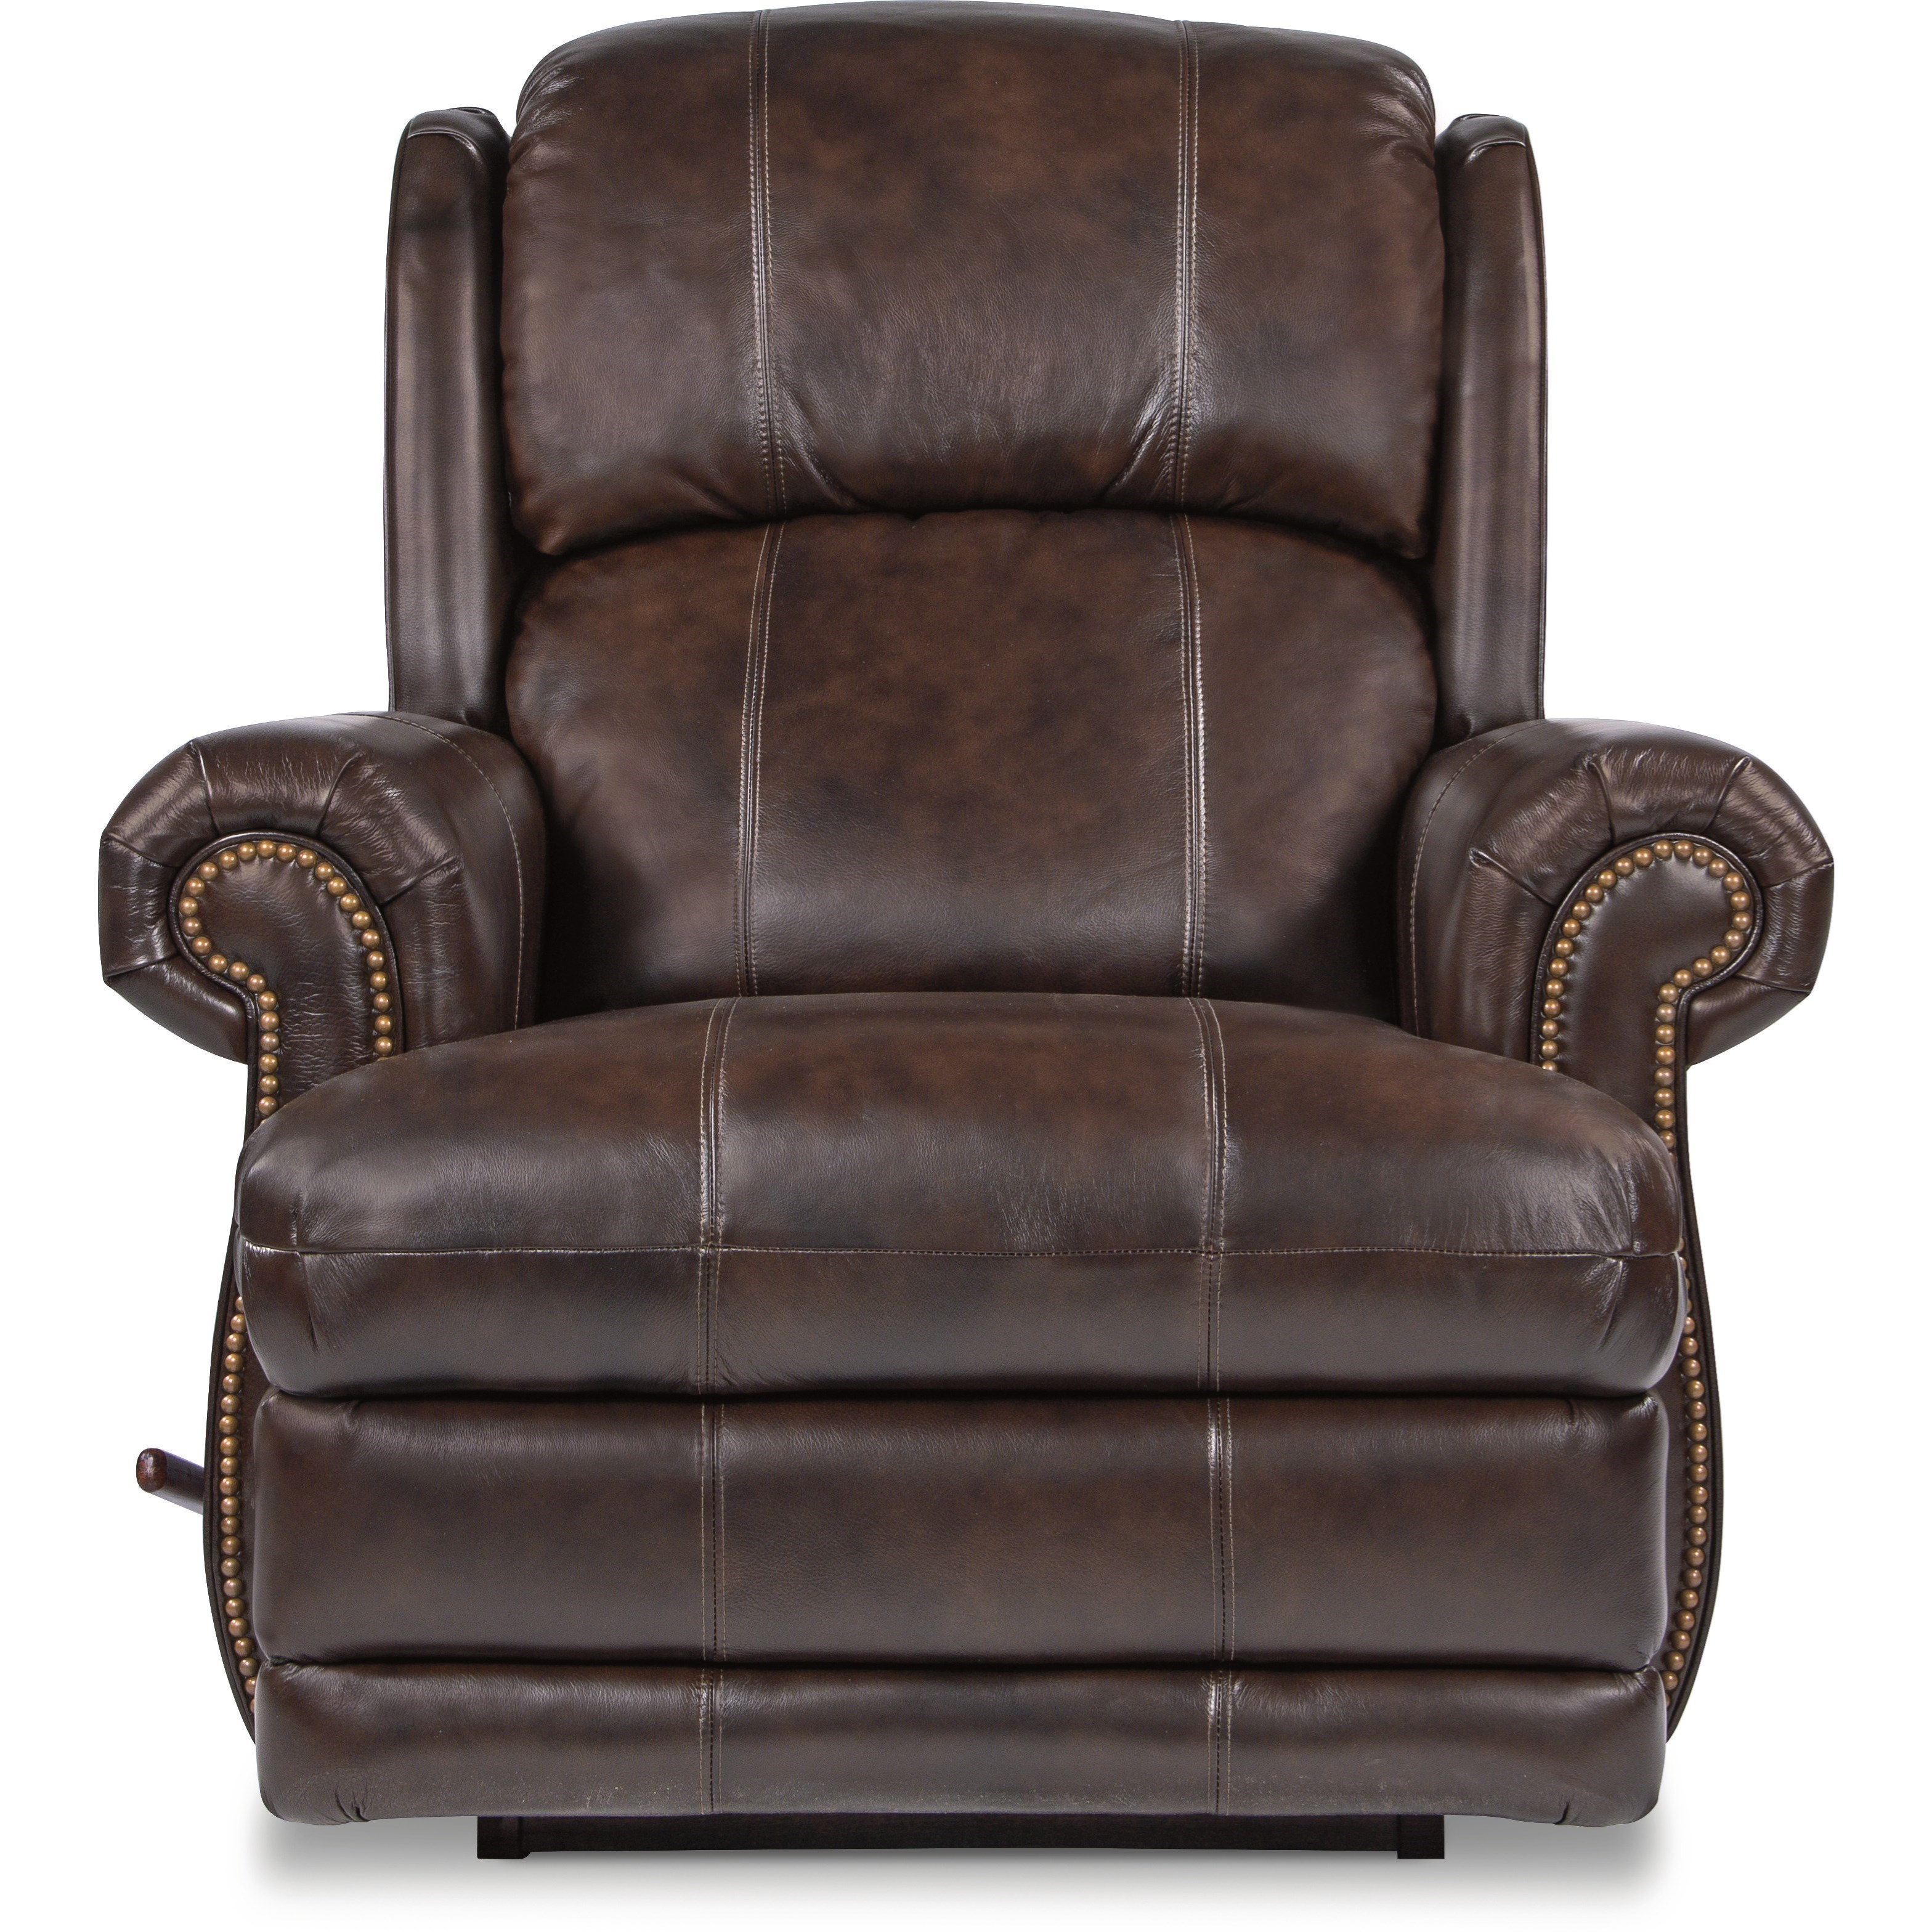 La Z Boy Kirkwood Kirkwood Reclina Glider Swivel Recliner With Nailhead Studs Bennett S Furniture And Mattresses Recliners